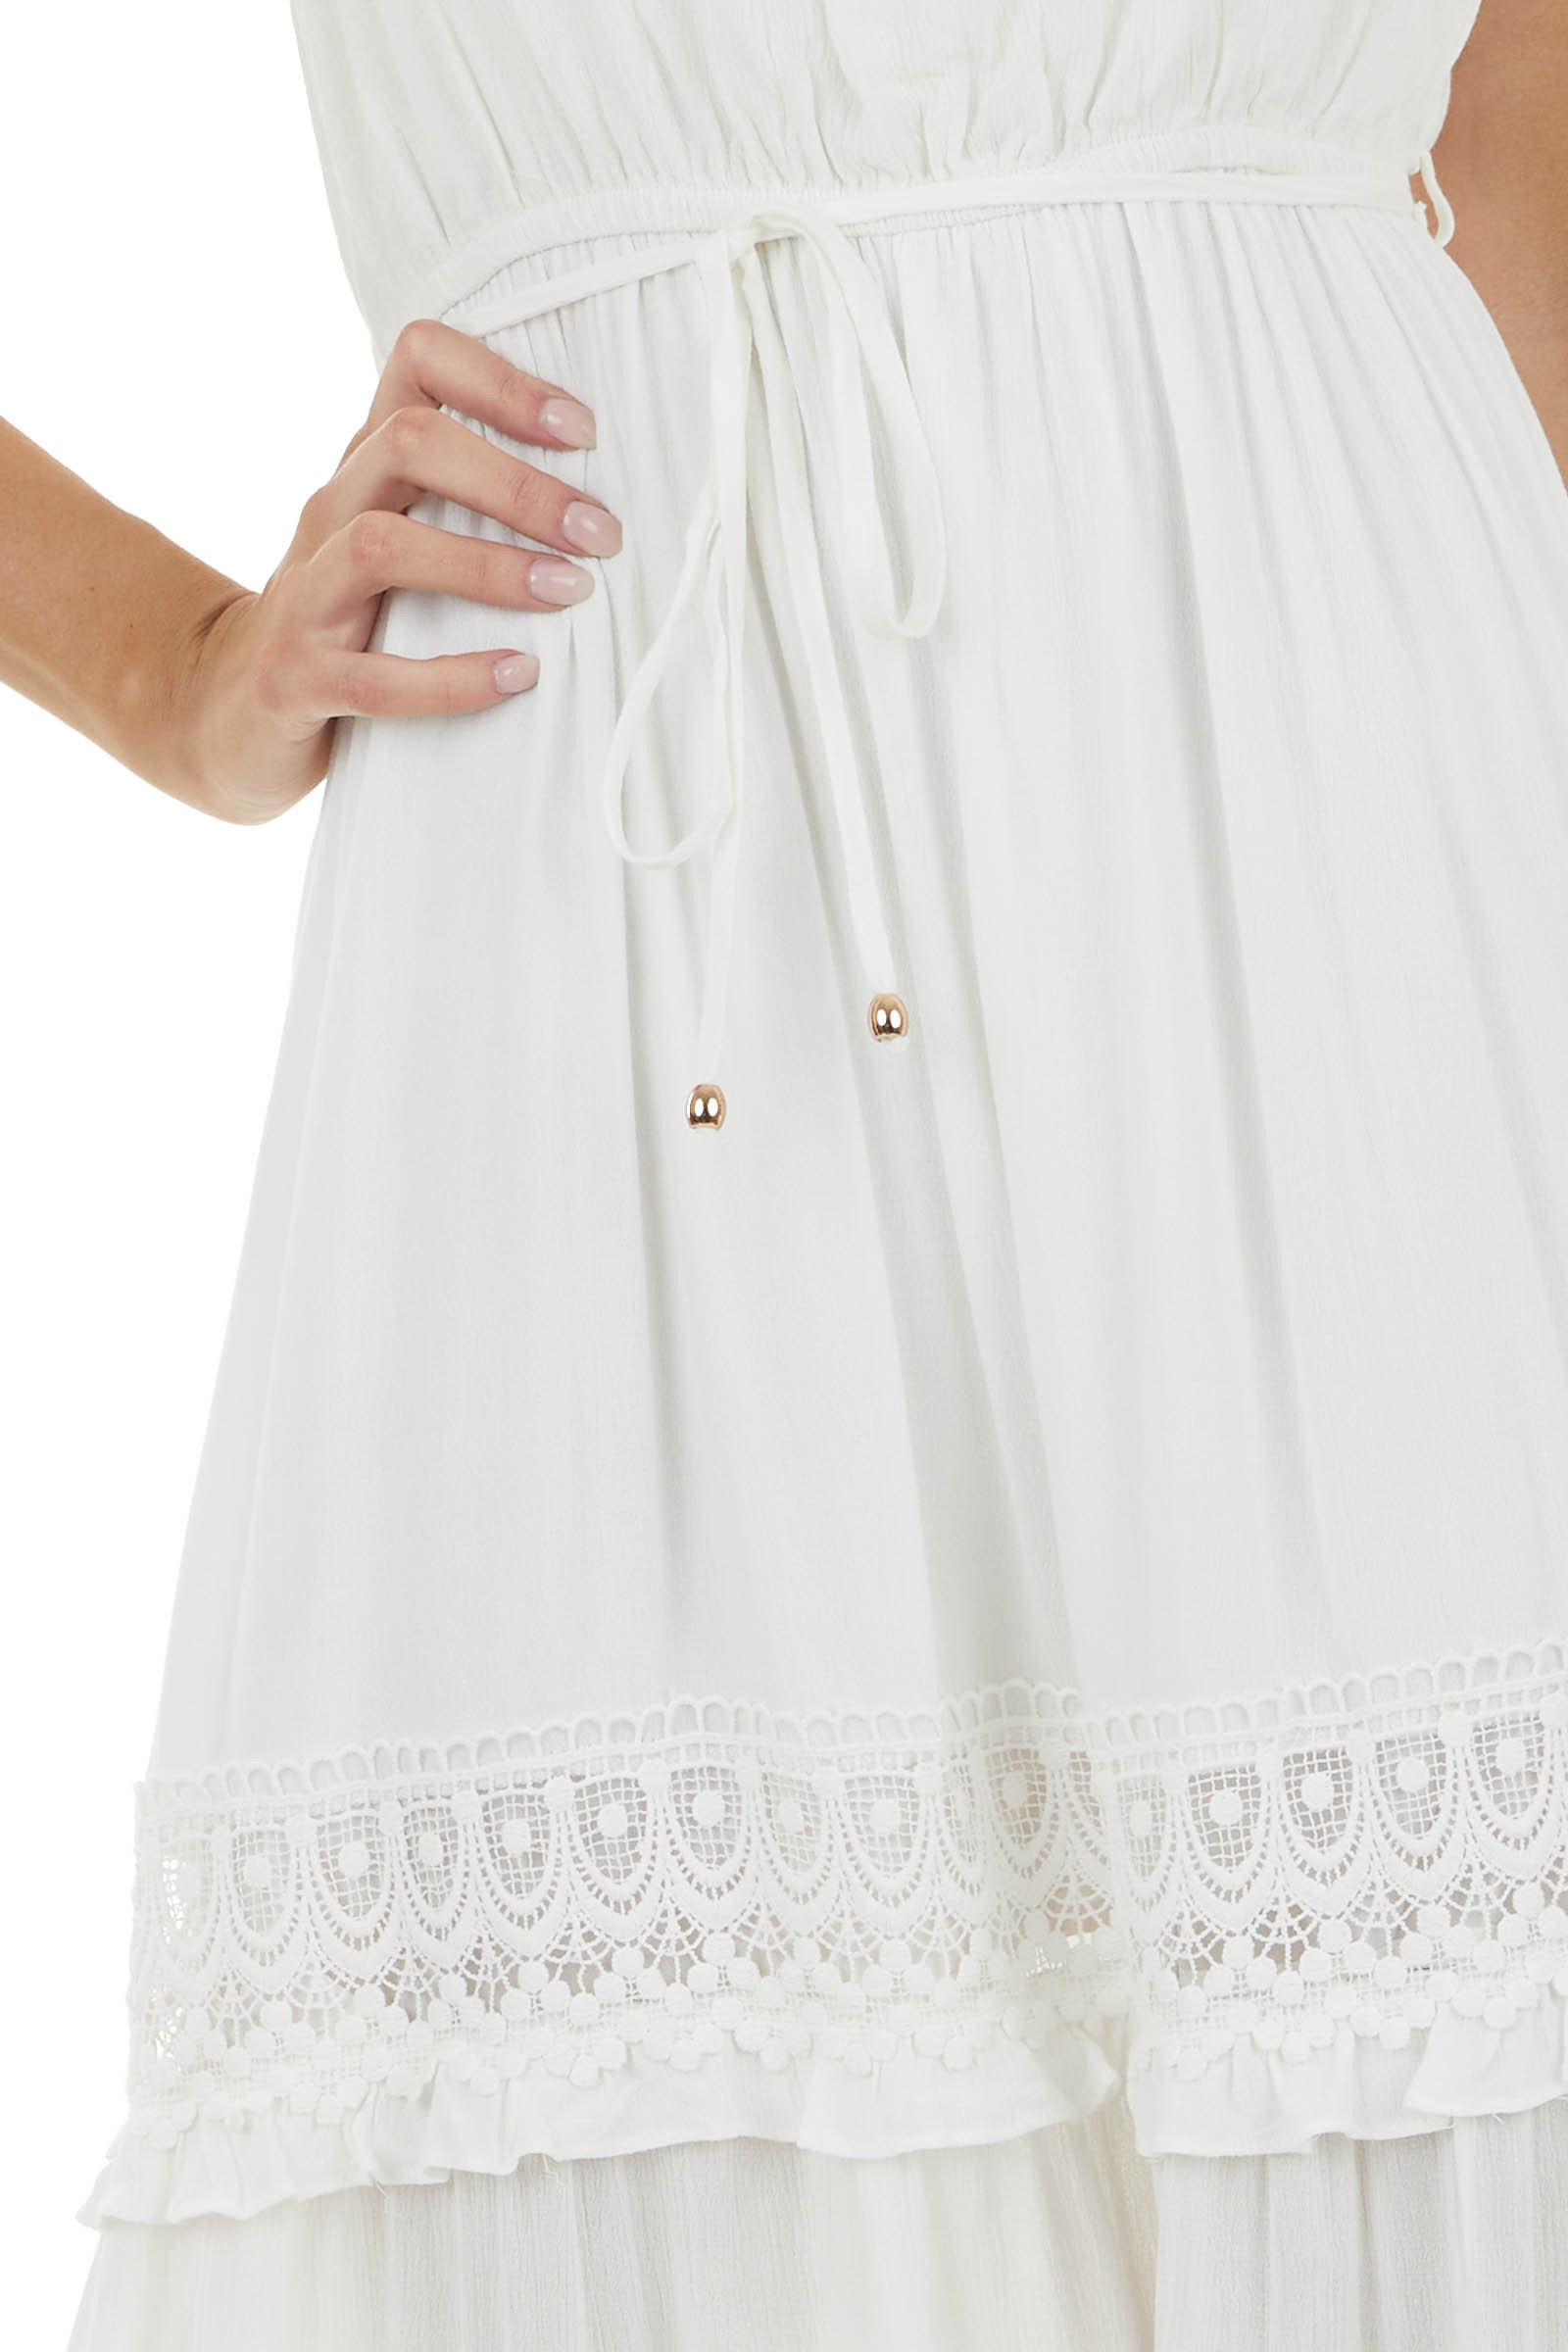 Ivory Sleeveless Maxi Dress with Crochet Lace Detail